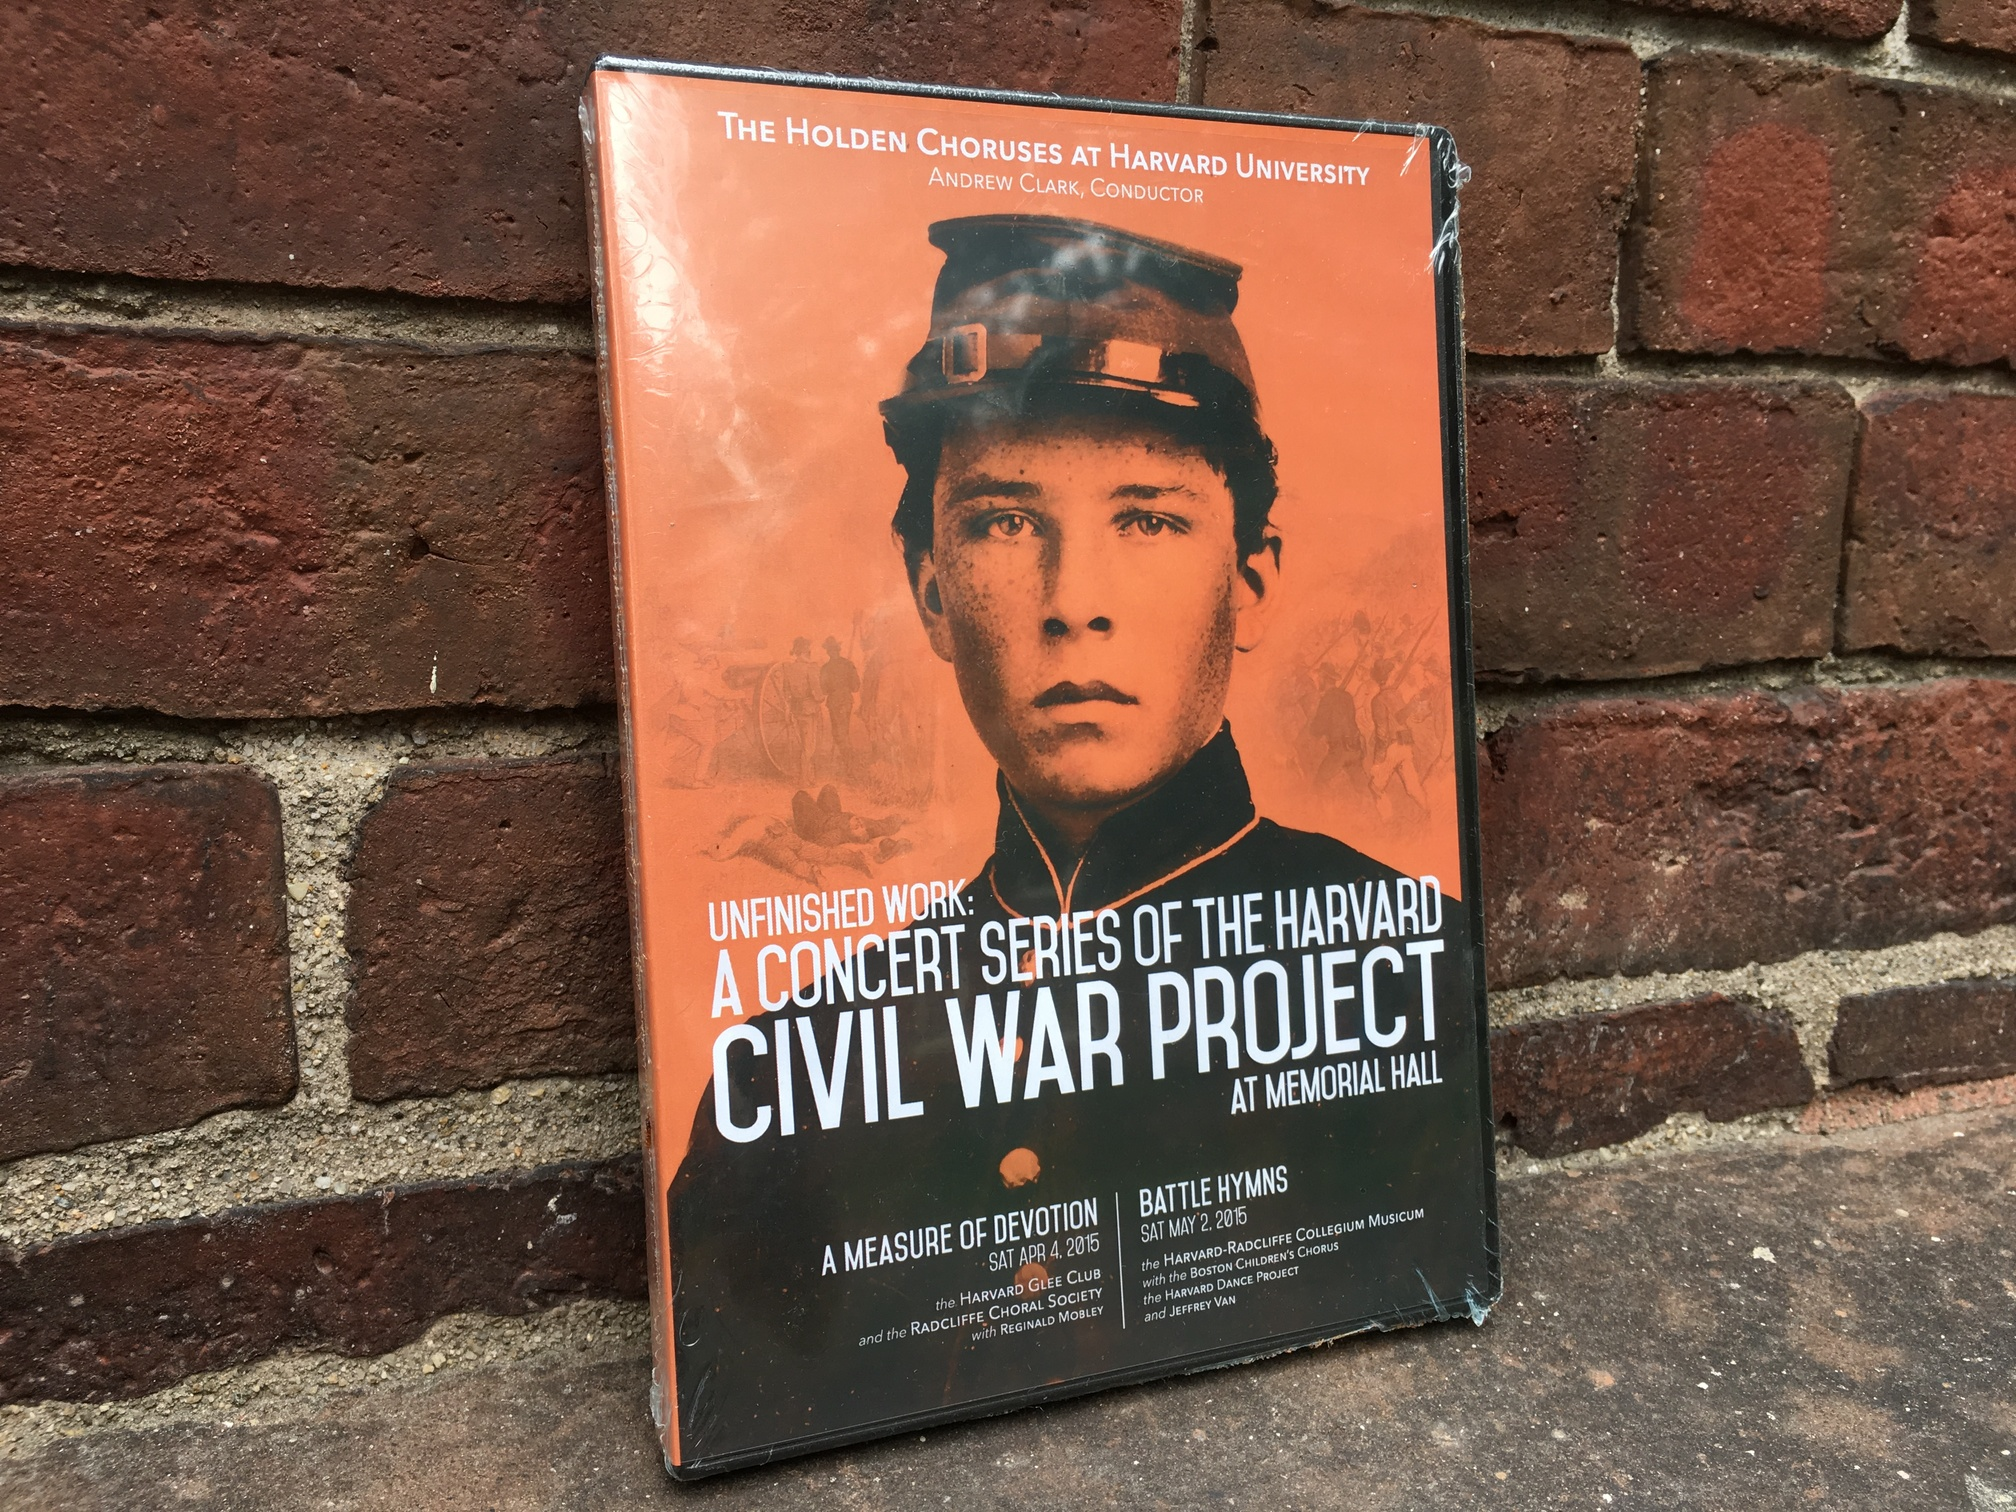 Civil War Project